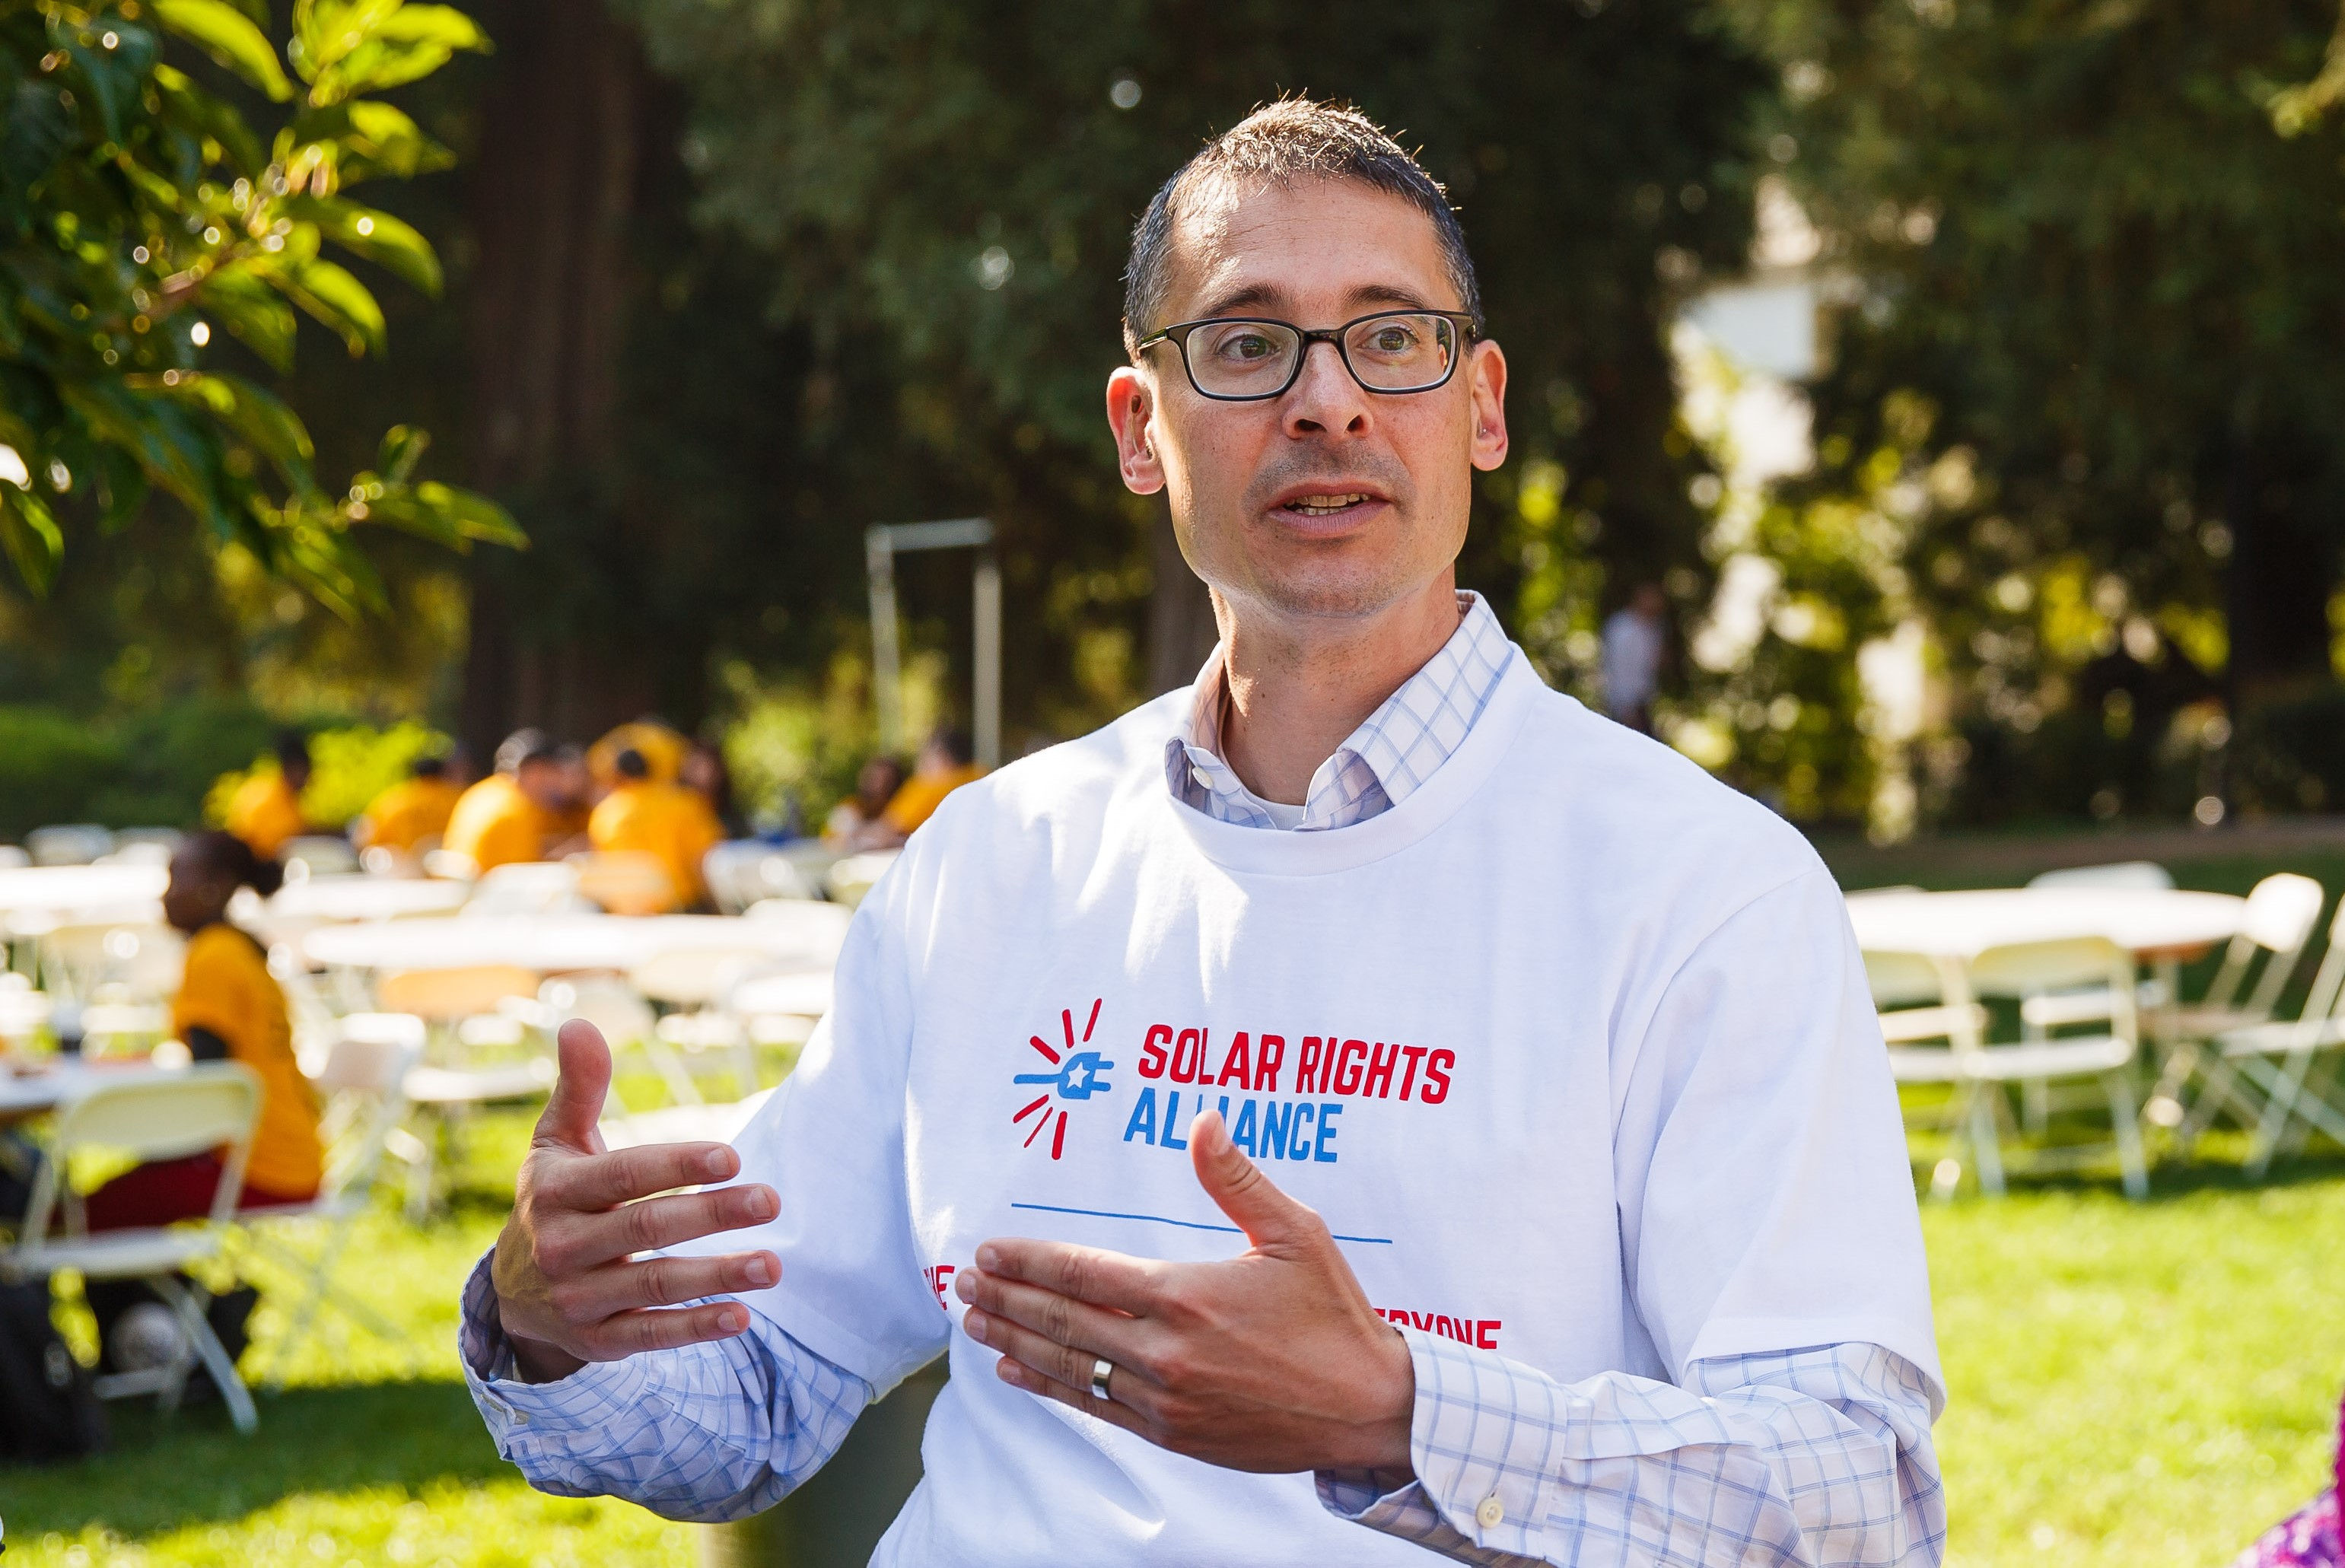 Solar Chat: Meet Dave Rosenfeld from the Solar Rights Alliance